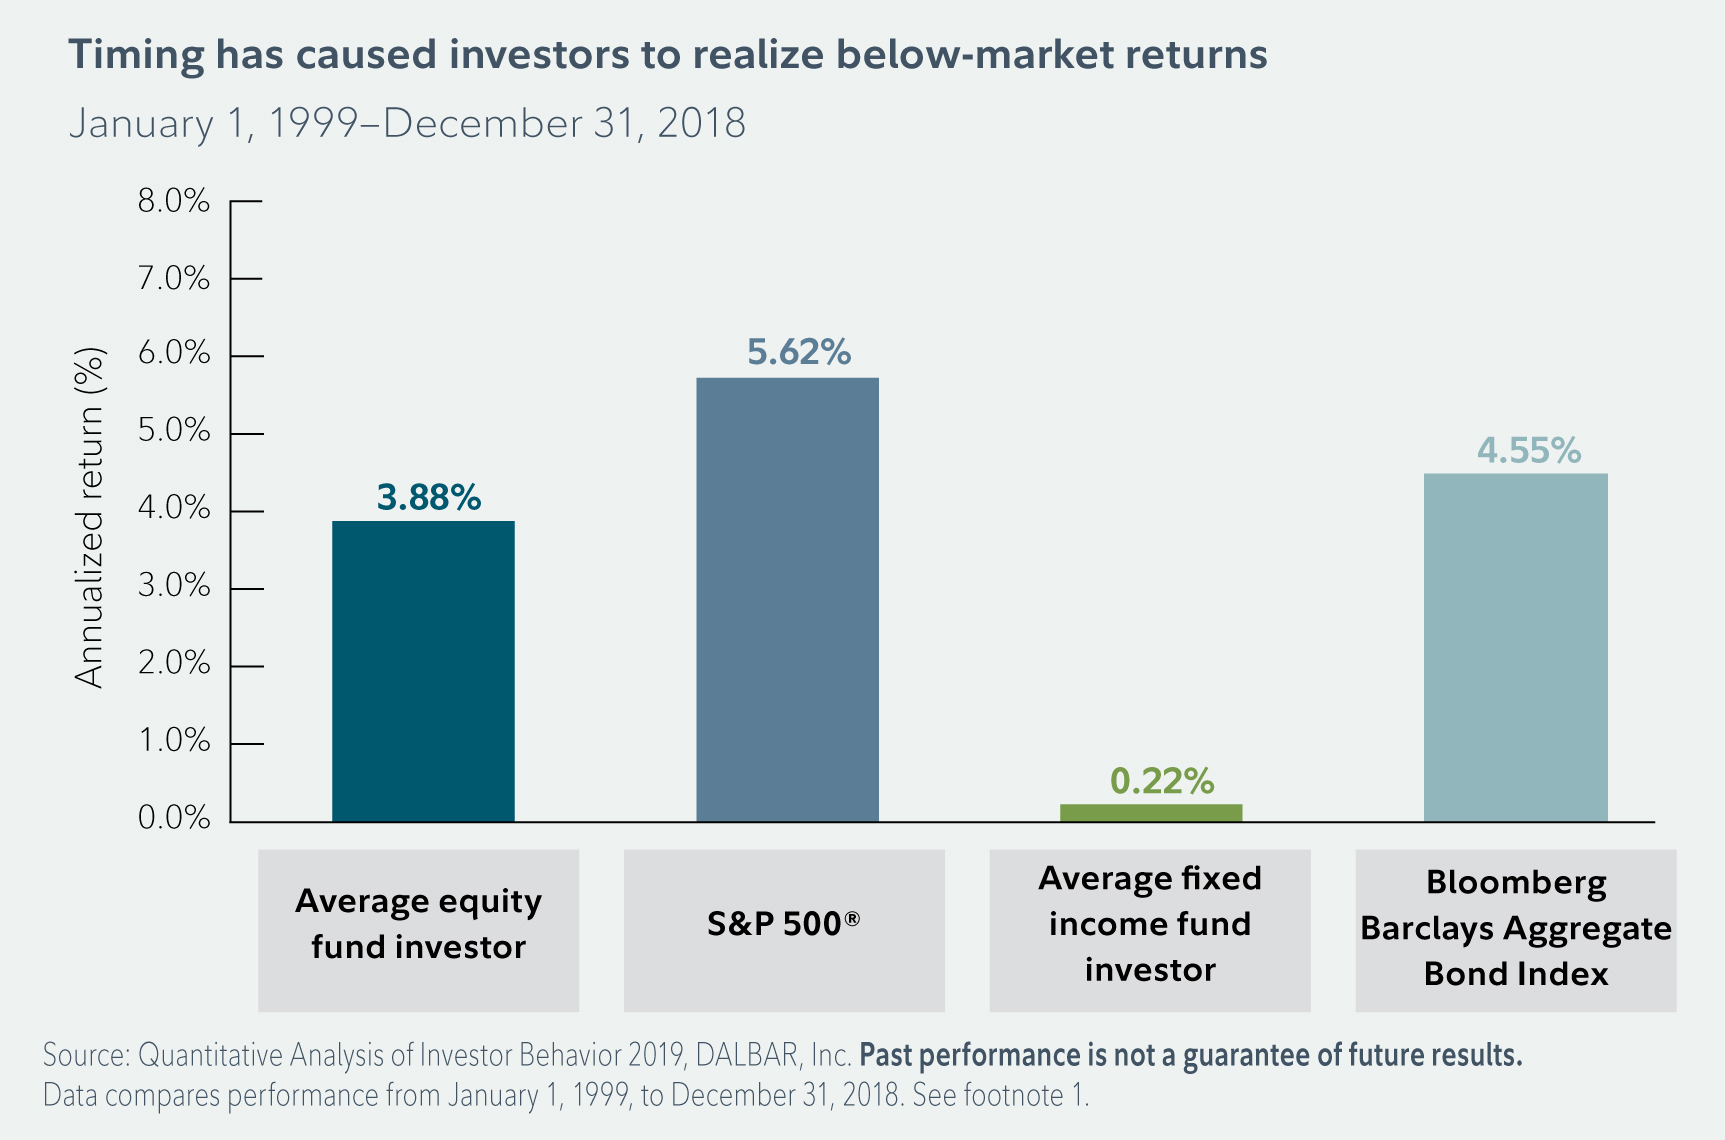 Bar graph shows how how attempting to time the market has caused investors to realize below market returns over time. It compares average annual returns for the average equity fund investor, the S&P 500 Index, the average fixed income fund investor, and the Barclays Aggregate Bond Index. Between January 1, 1999 and December 30, 2018 the average equity fund investor has seen returns of 3.88%, the S&P 500 Index has returned 5.62%, the average fixed income fund investor has seen returns of .22%, and the Barclays Aggregate Bond Index has returned 4.55%.